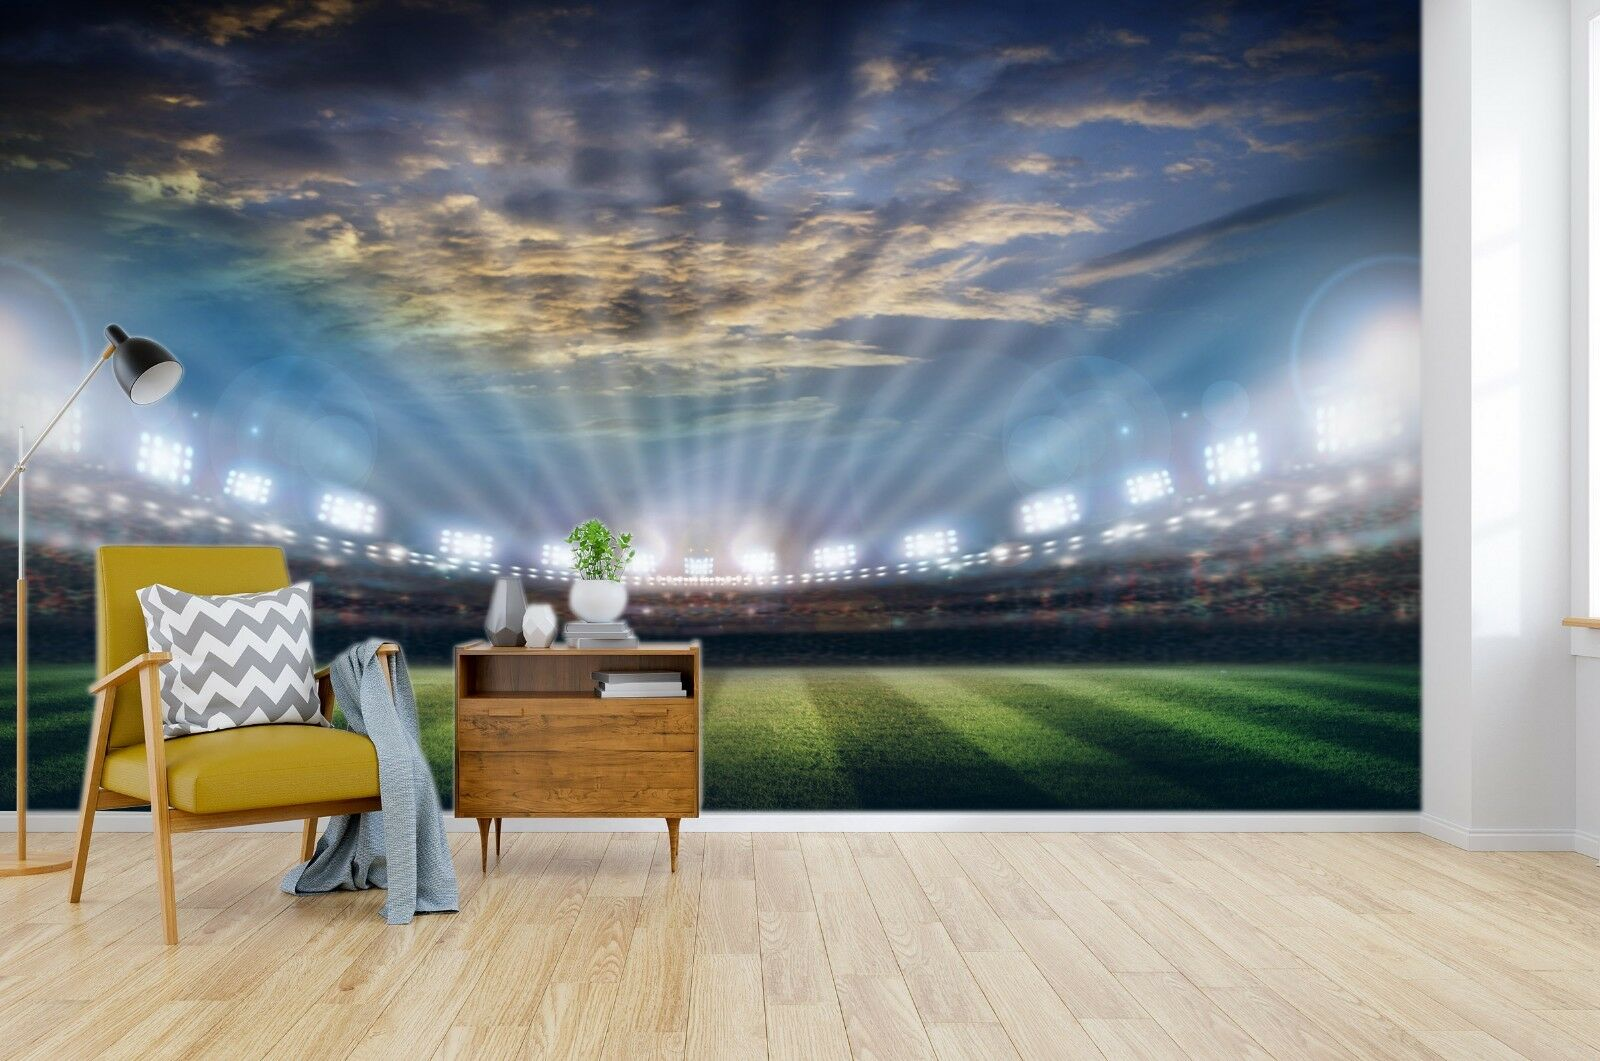 3D Skylight Stadium 53 Wall Paper Wall Print Decal Wall Deco Indoor Wall Murals